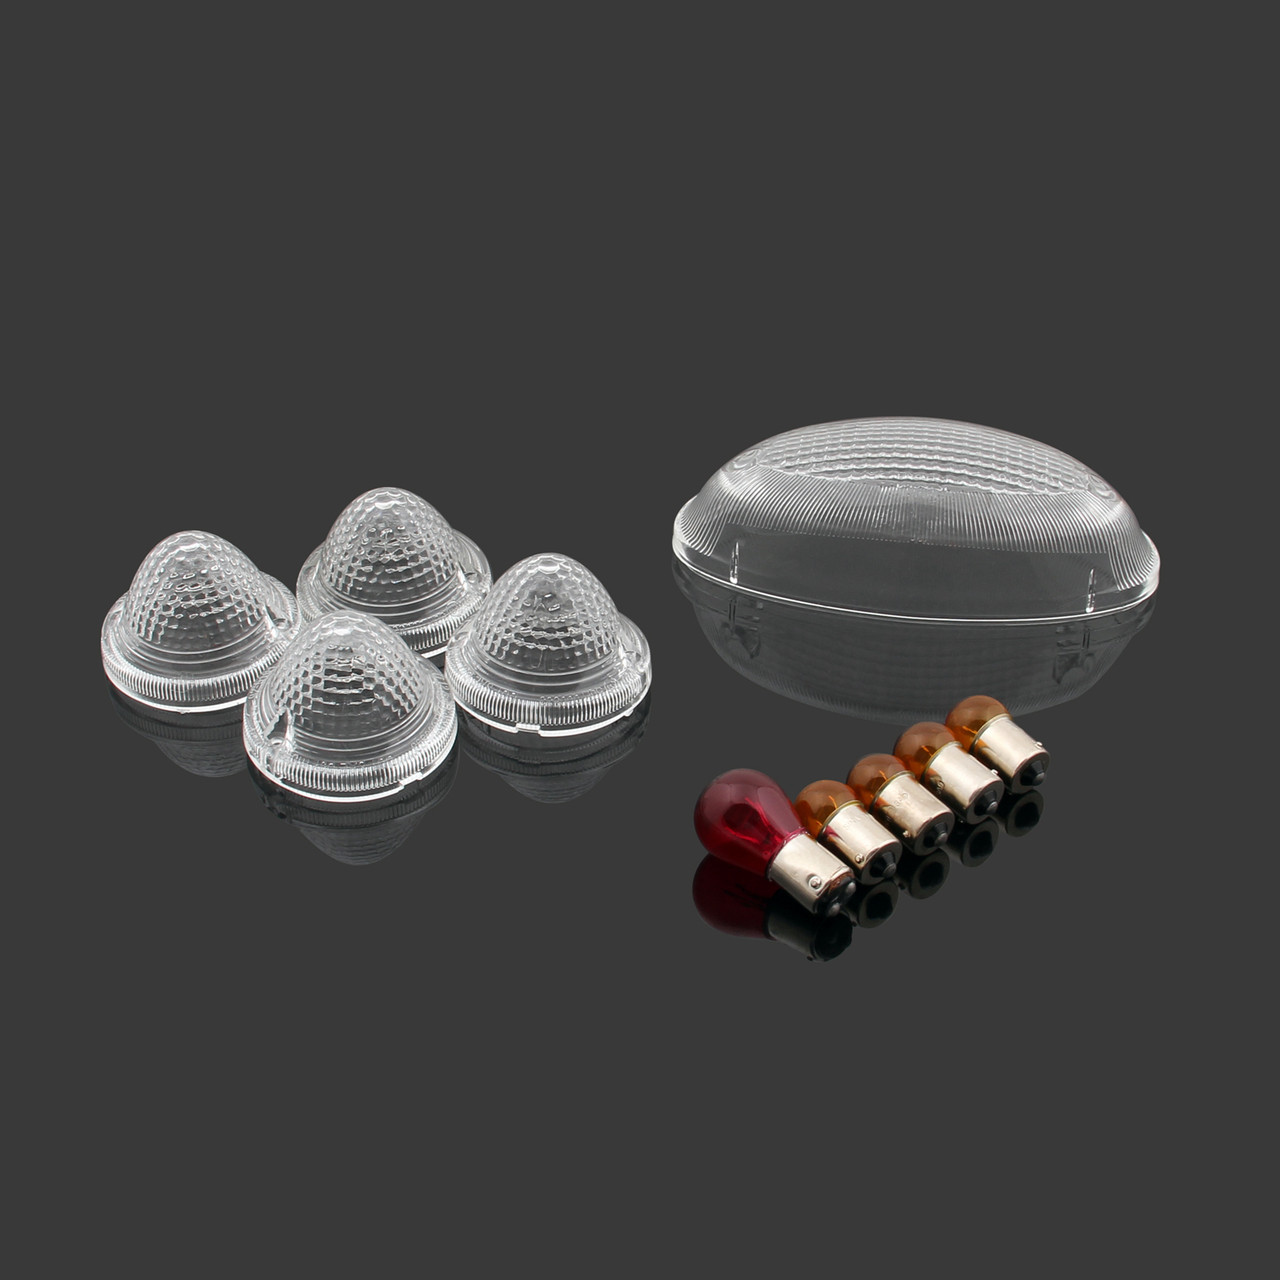 TailLight Turn Signals Indicators Lens Bulbs Set Triumph Bonneville SE T100, Clear